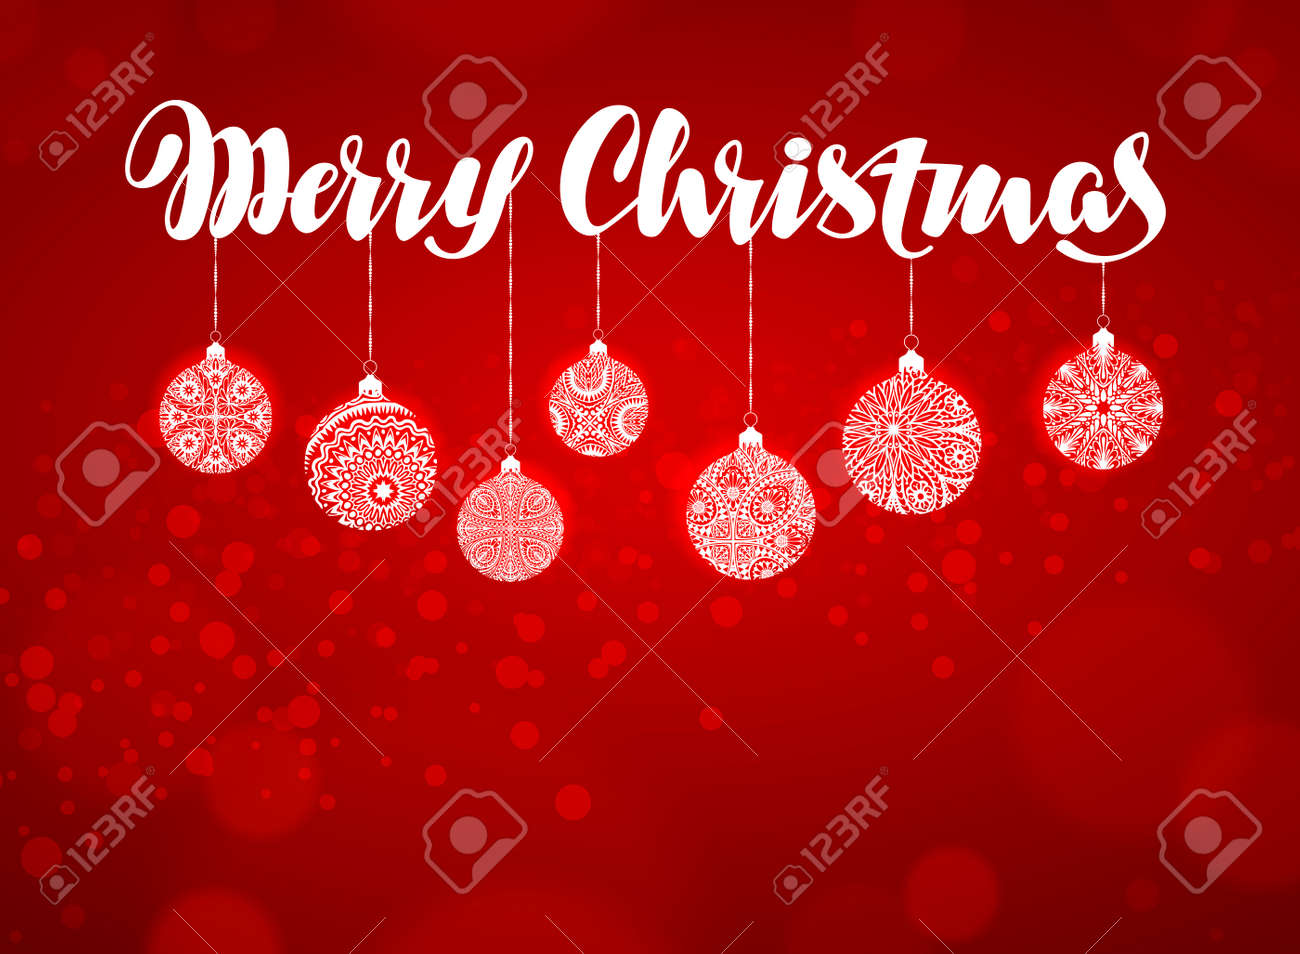 Merry Christmas Banner Xmas Decoration Vector Illustration On Royalty Free Cliparts Vectors And Stock Illustration Image 67209159 Christmas 728×90 leaderboard banner template. merry christmas banner xmas decoration vector illustration on